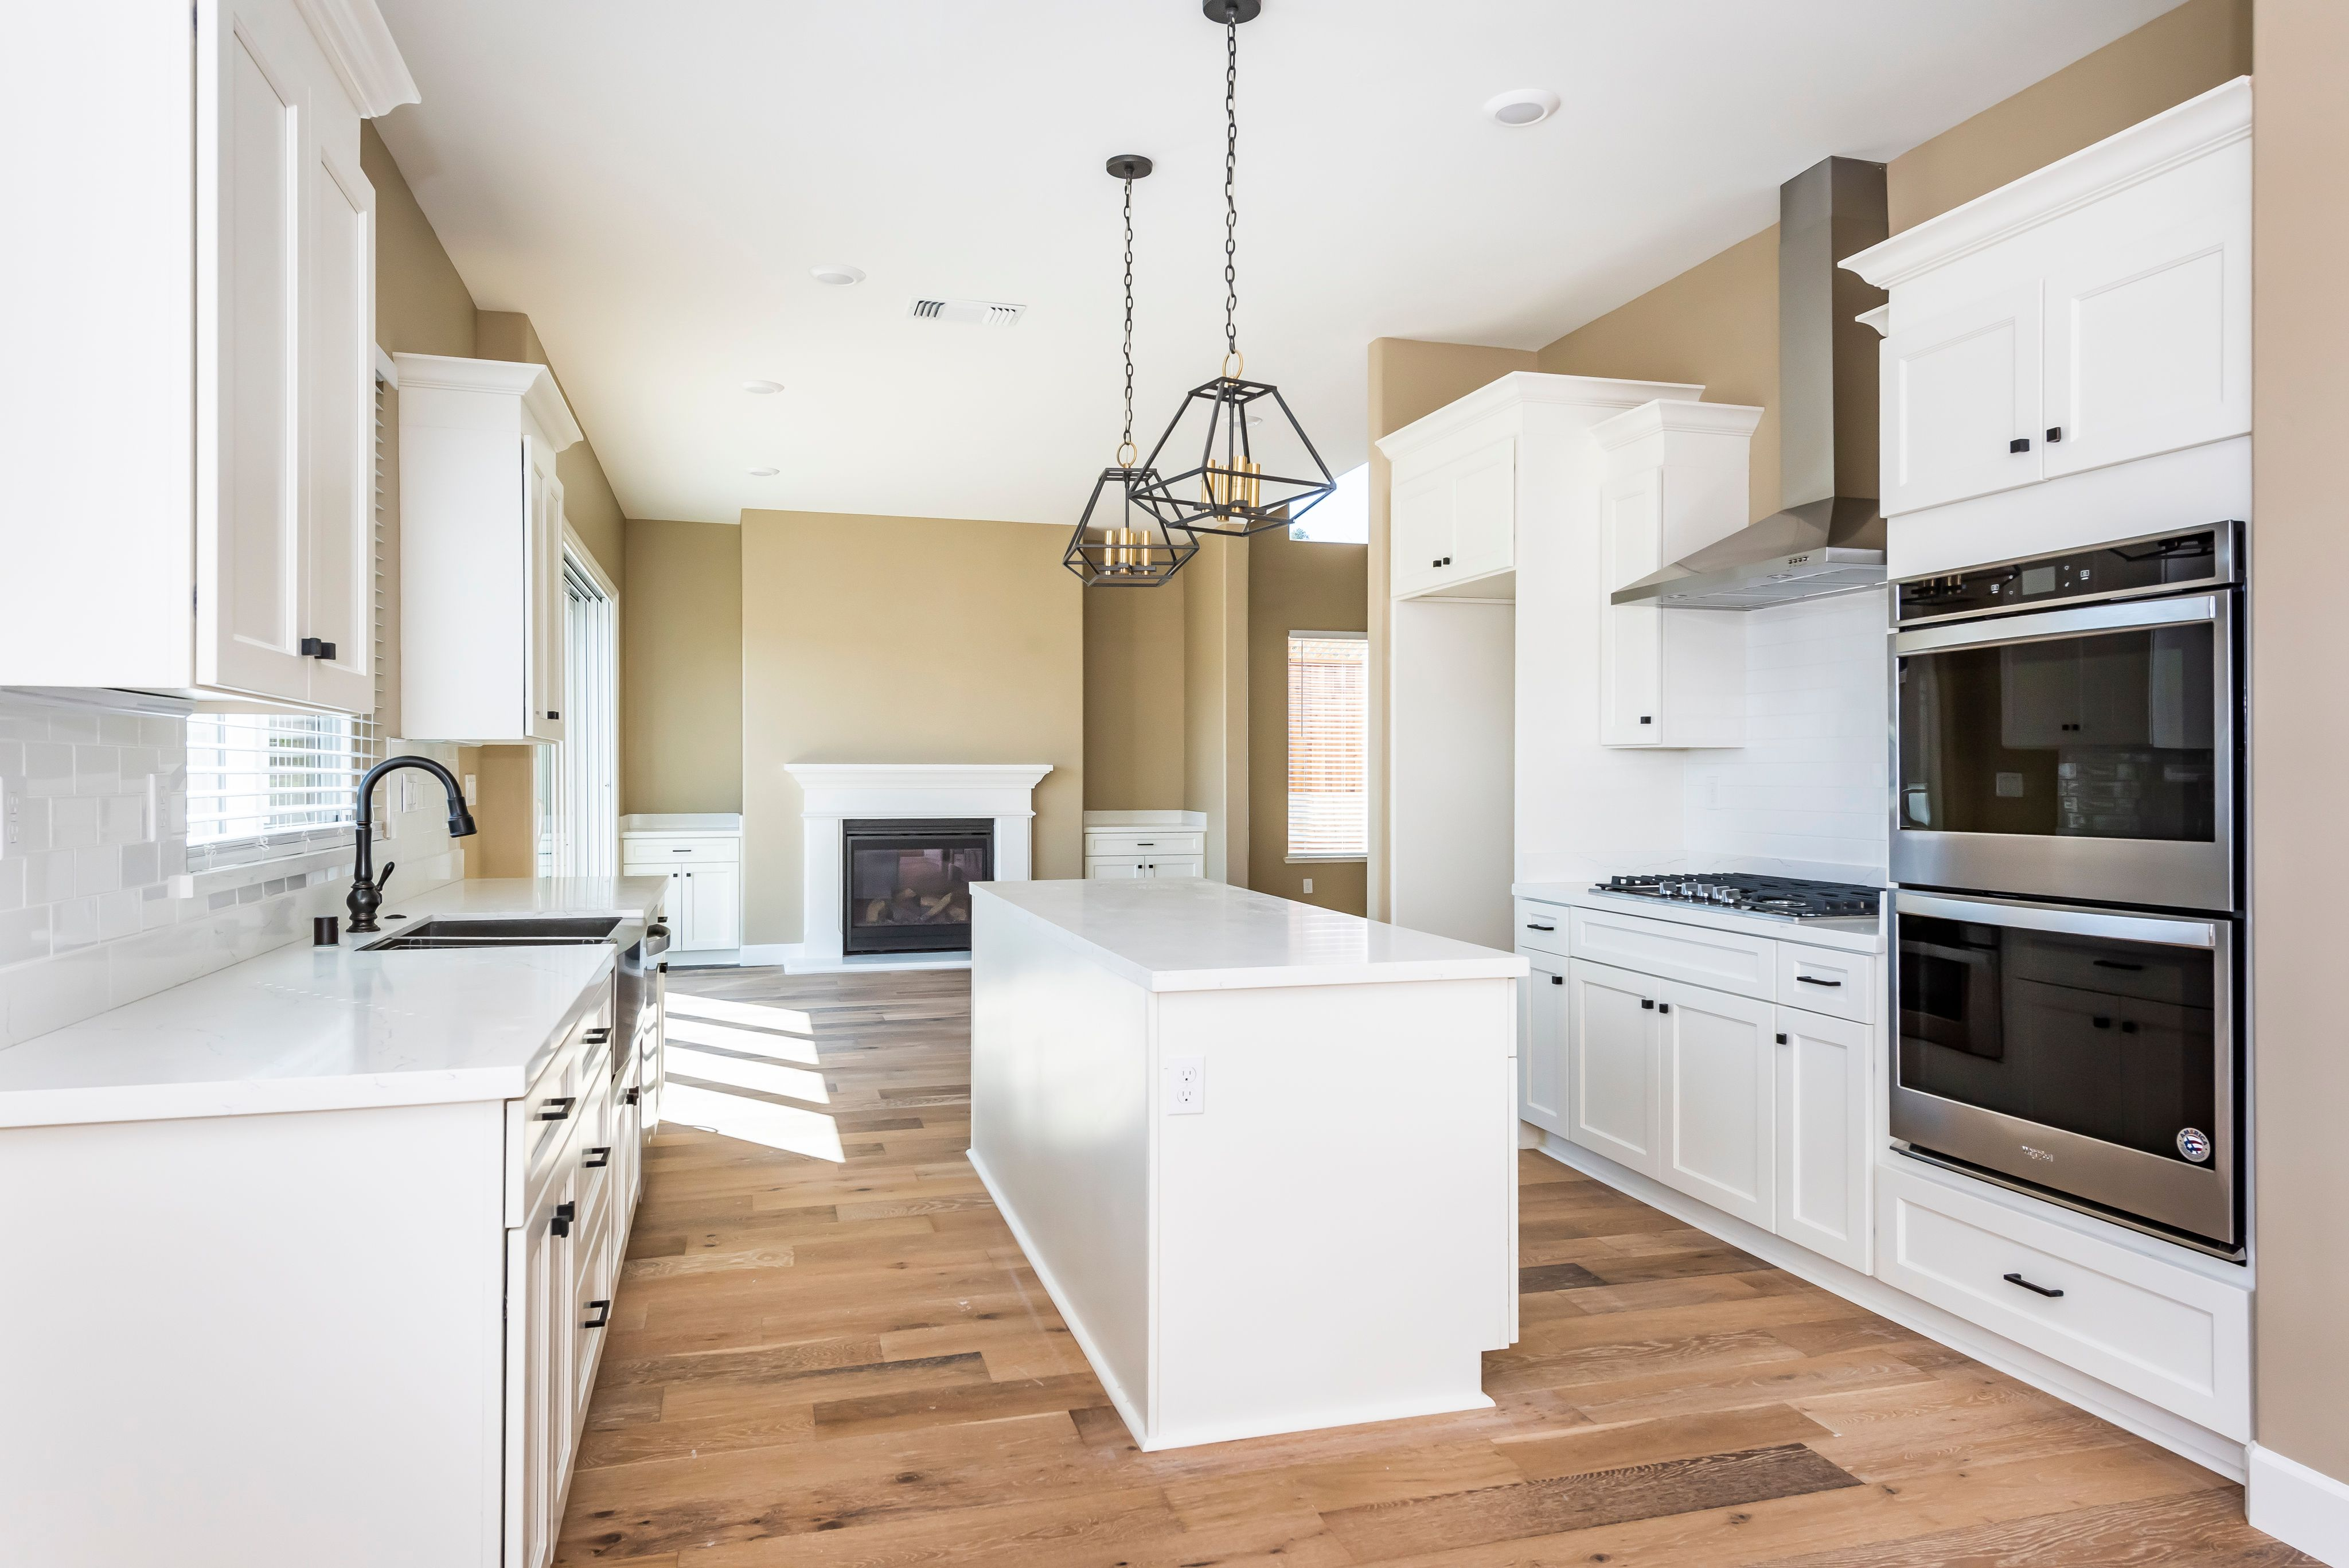 Kitchen featured in the 3668 Fir Ridge Drive By Silvermark Luxury Homes in Santa Rosa, CA